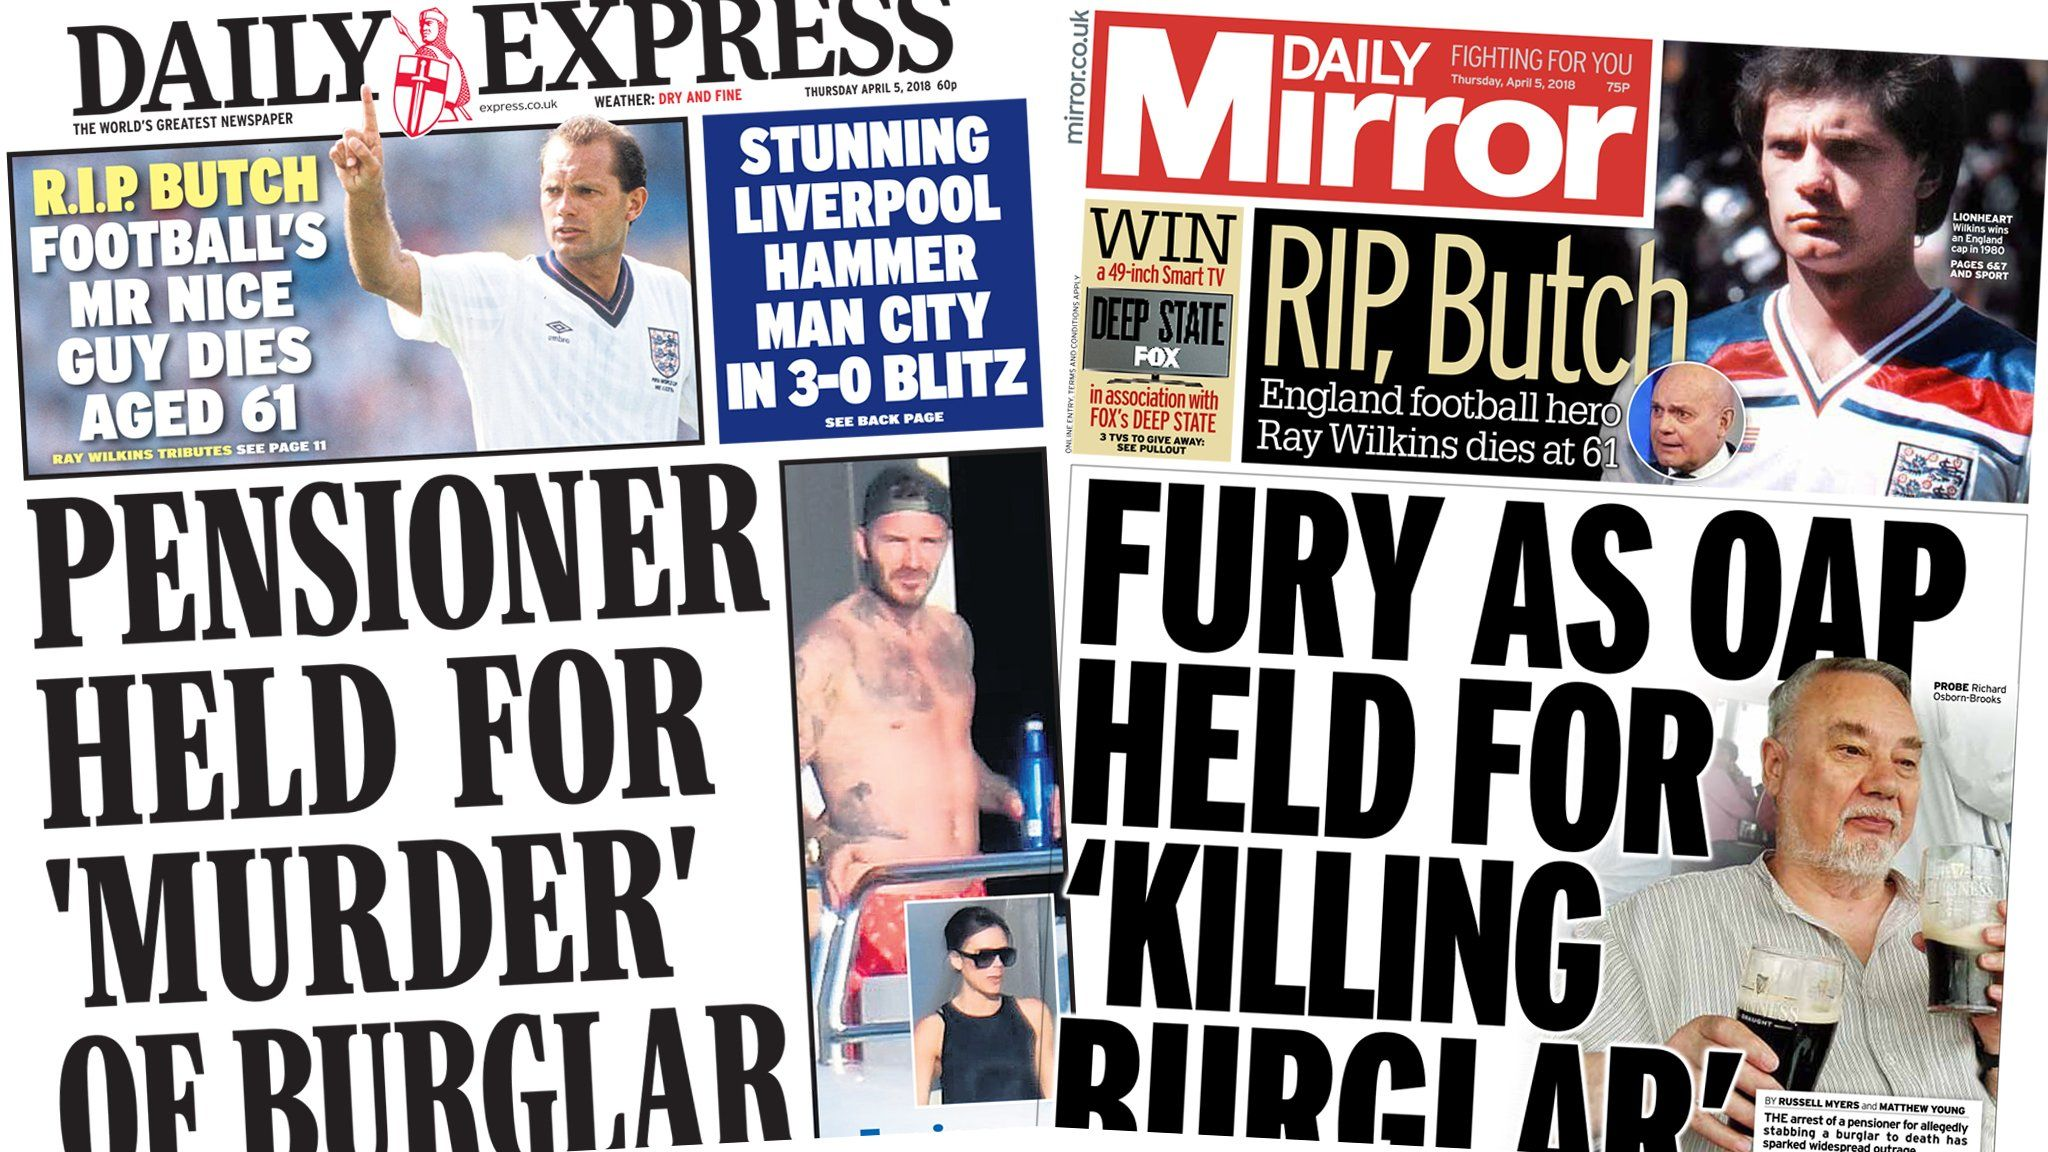 Express and Mirror front pages 5th April